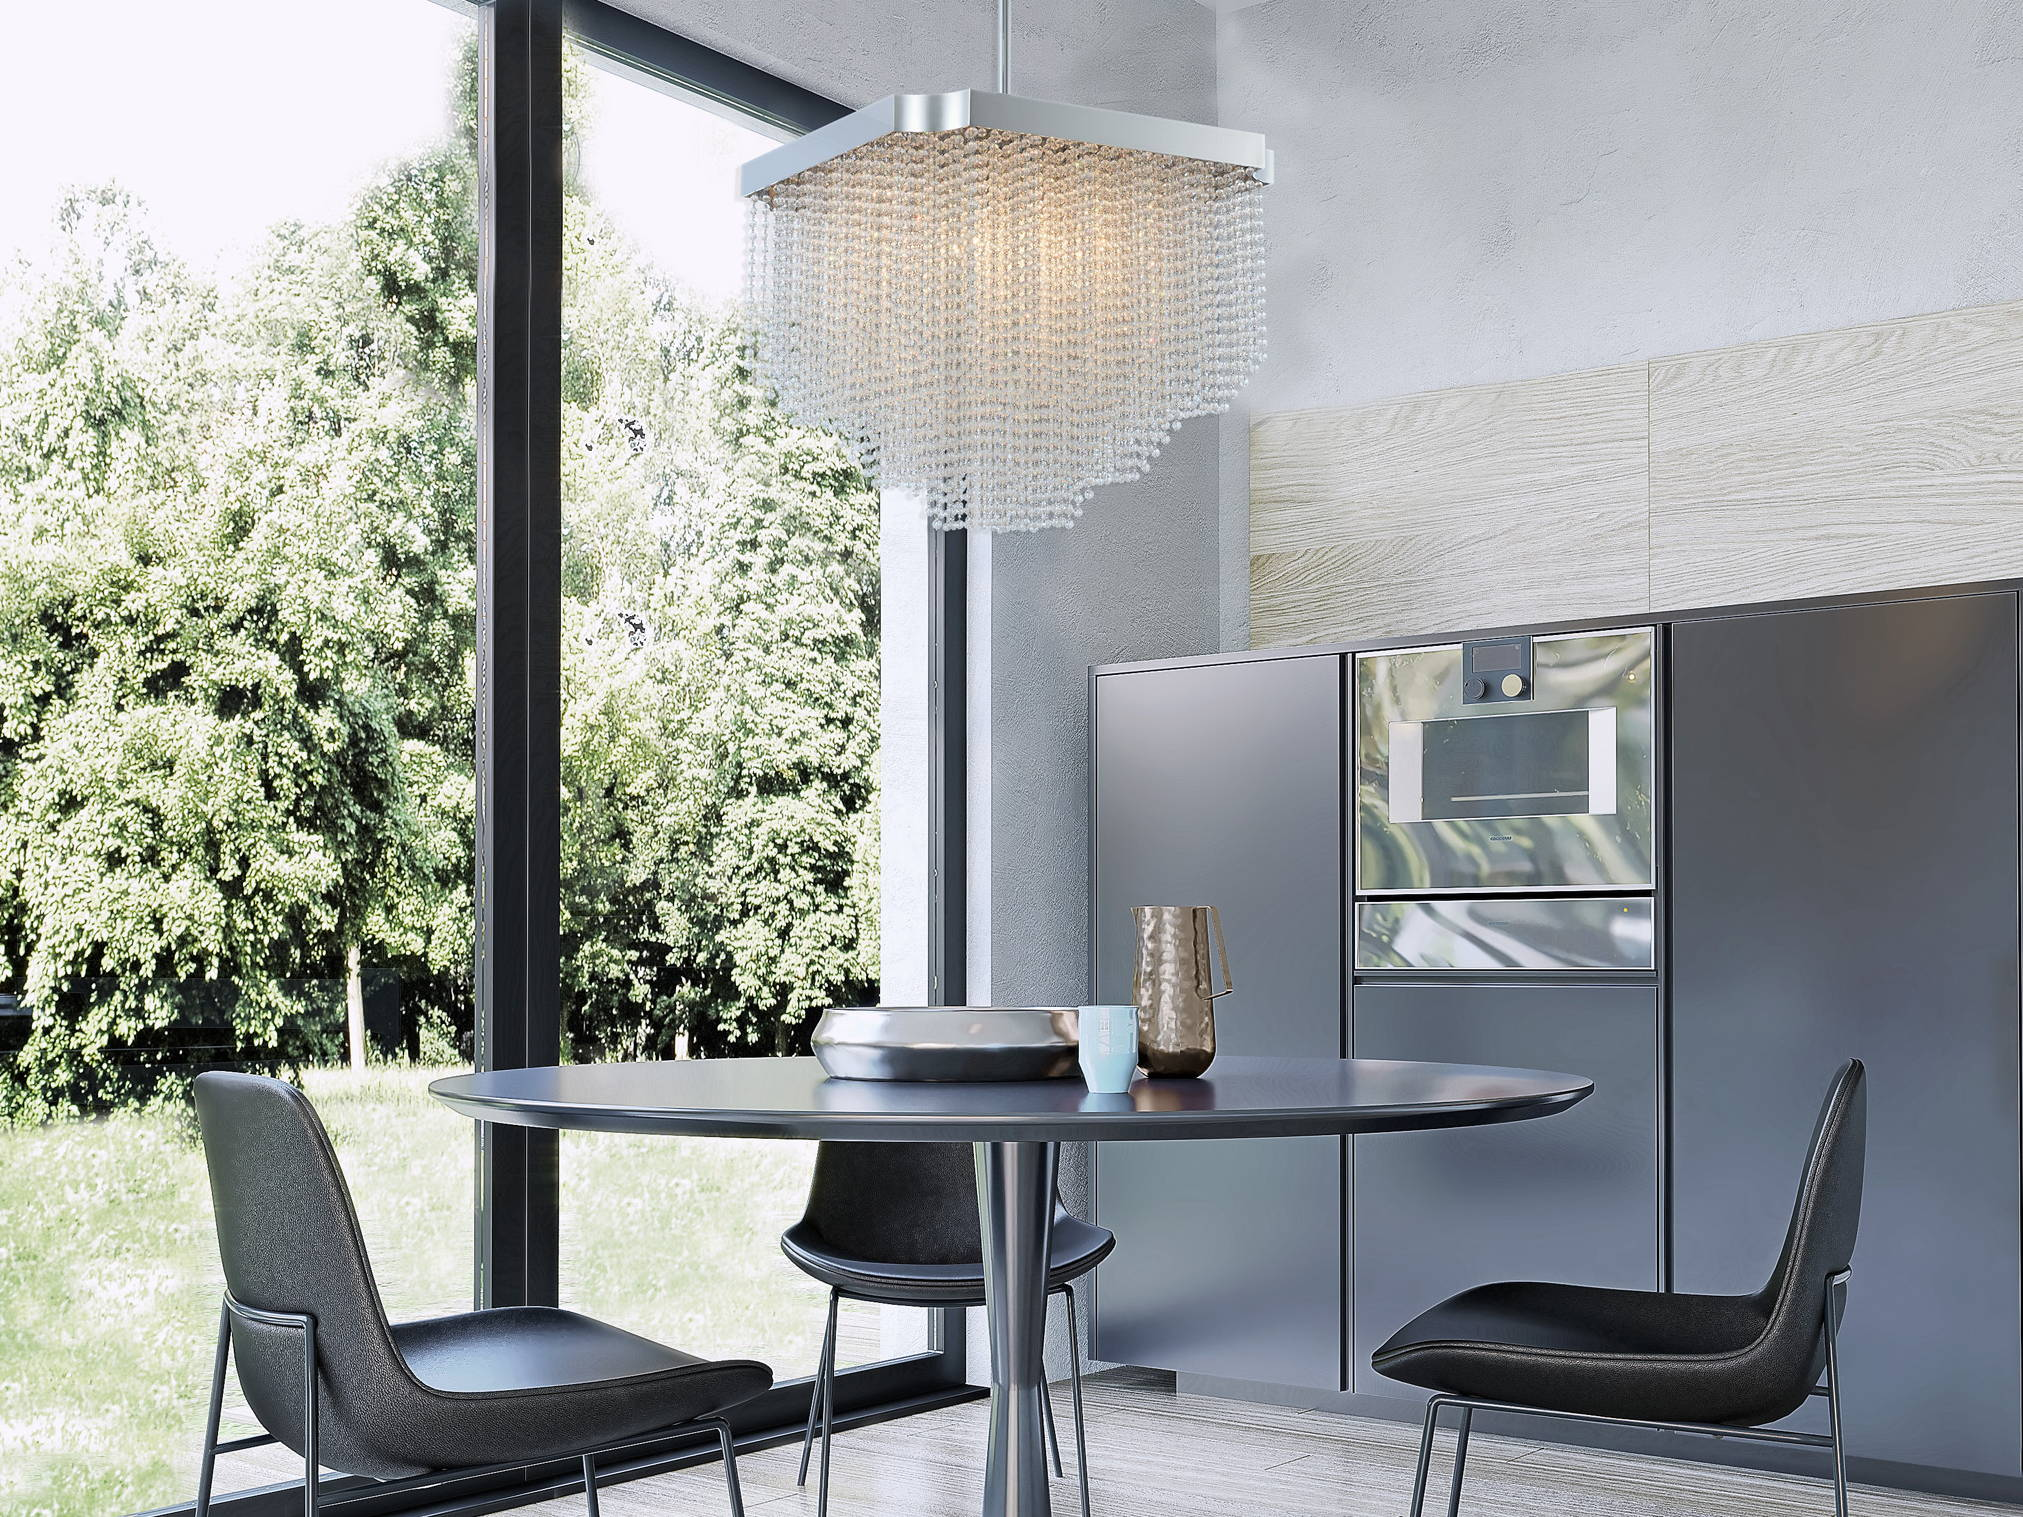 Tenda collection  crystal kitchen lightingby Allegri